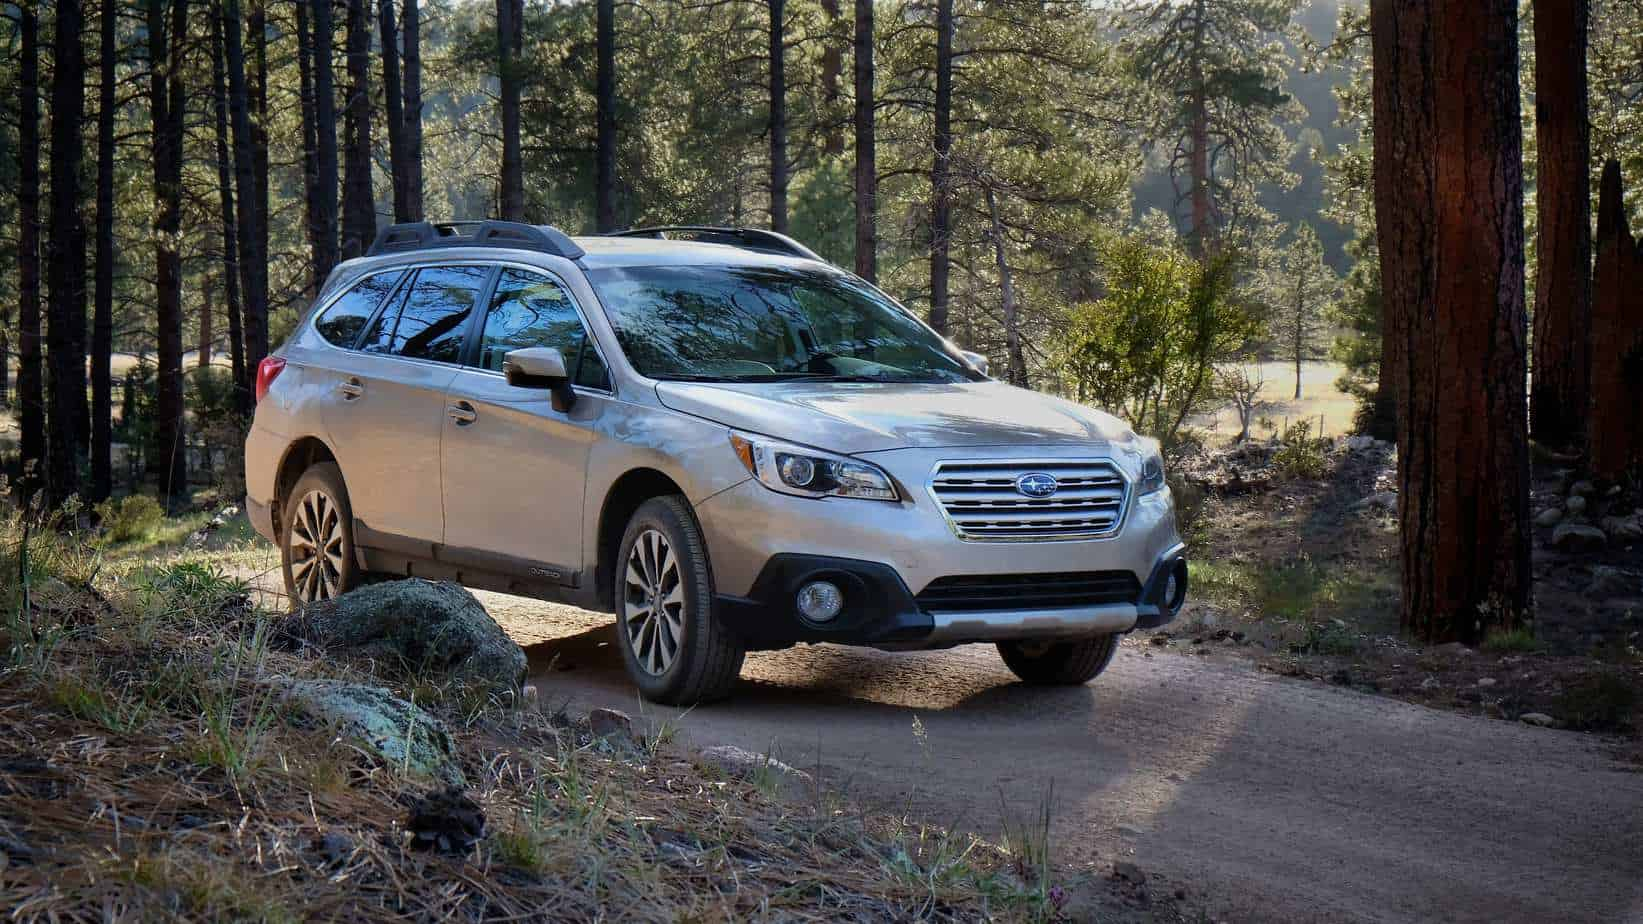 Road Test: The new 2015 Subaru Outback – Expedition Portal